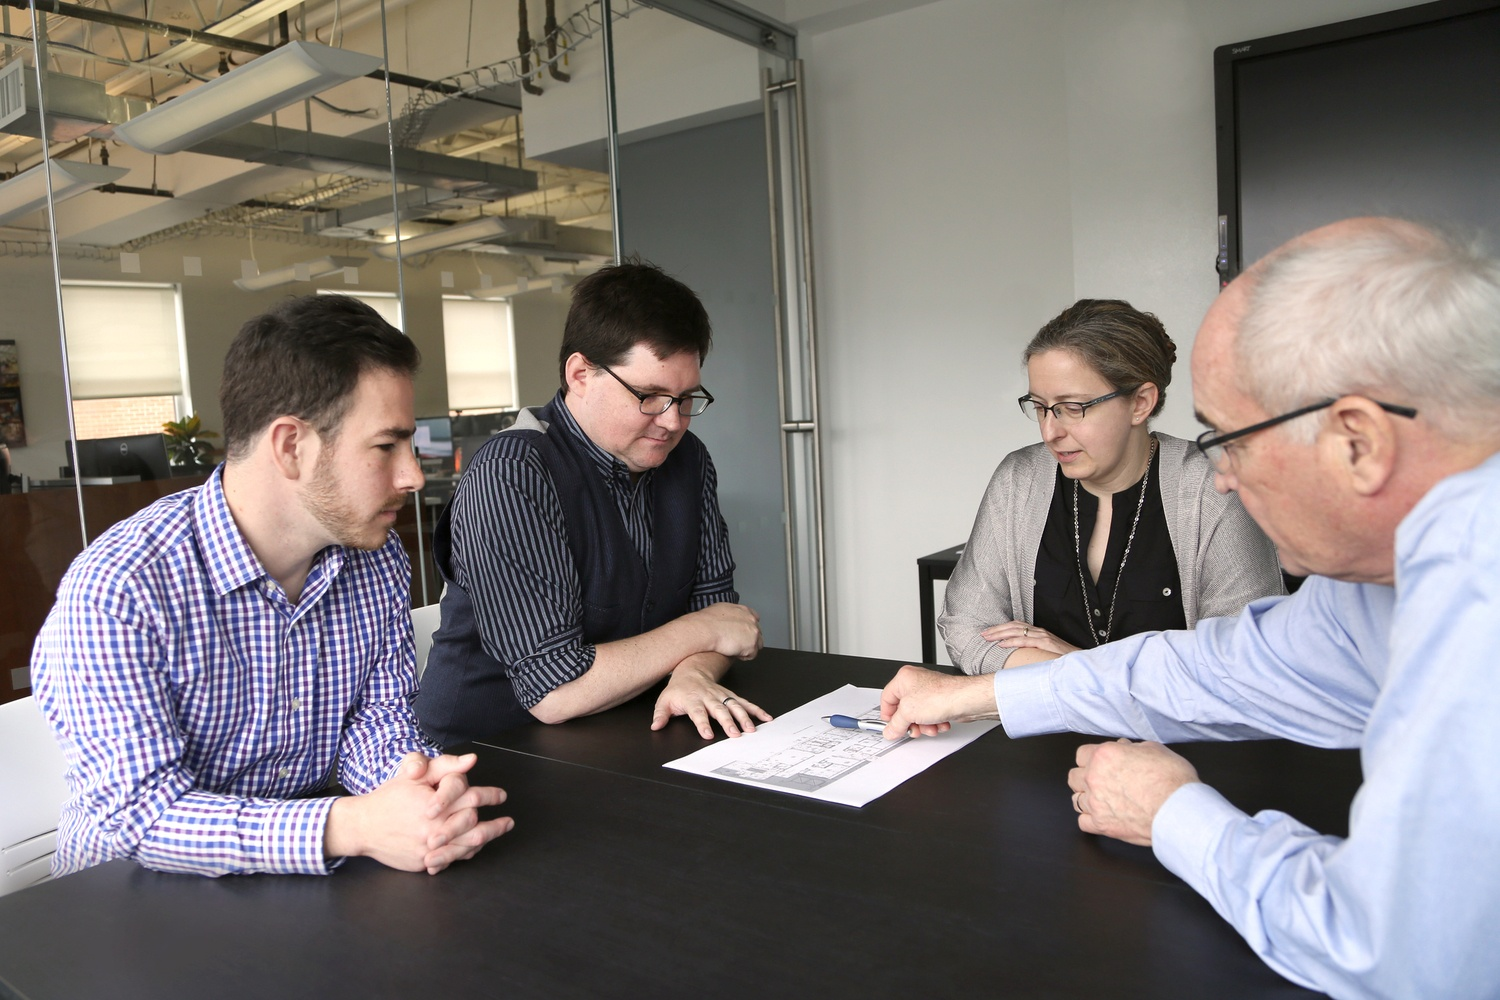 Architects Meeting in Array's DC Office